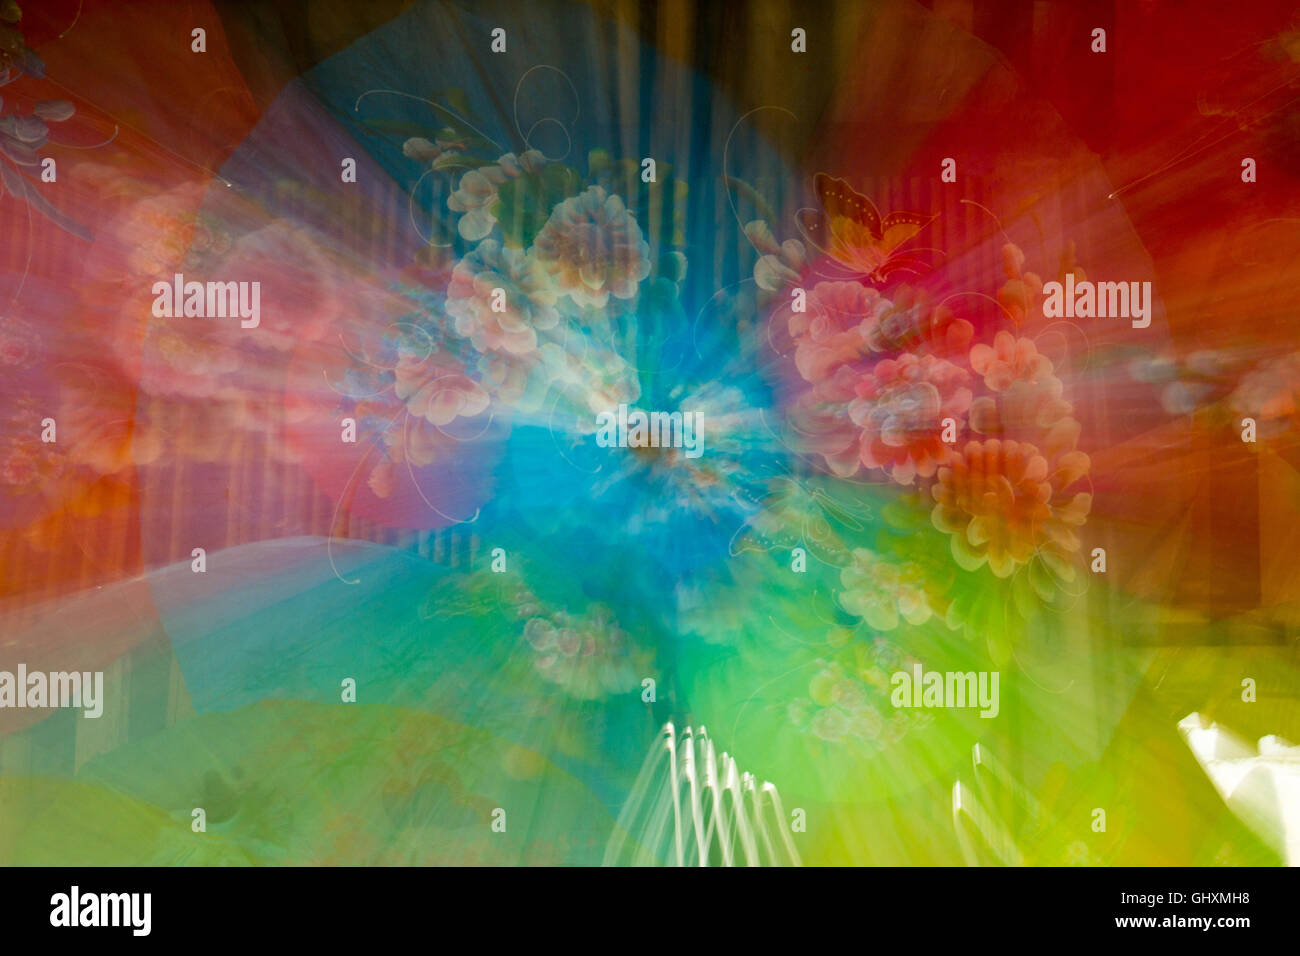 Abstract or blurring colors, spinning umbrellas - Stock Image